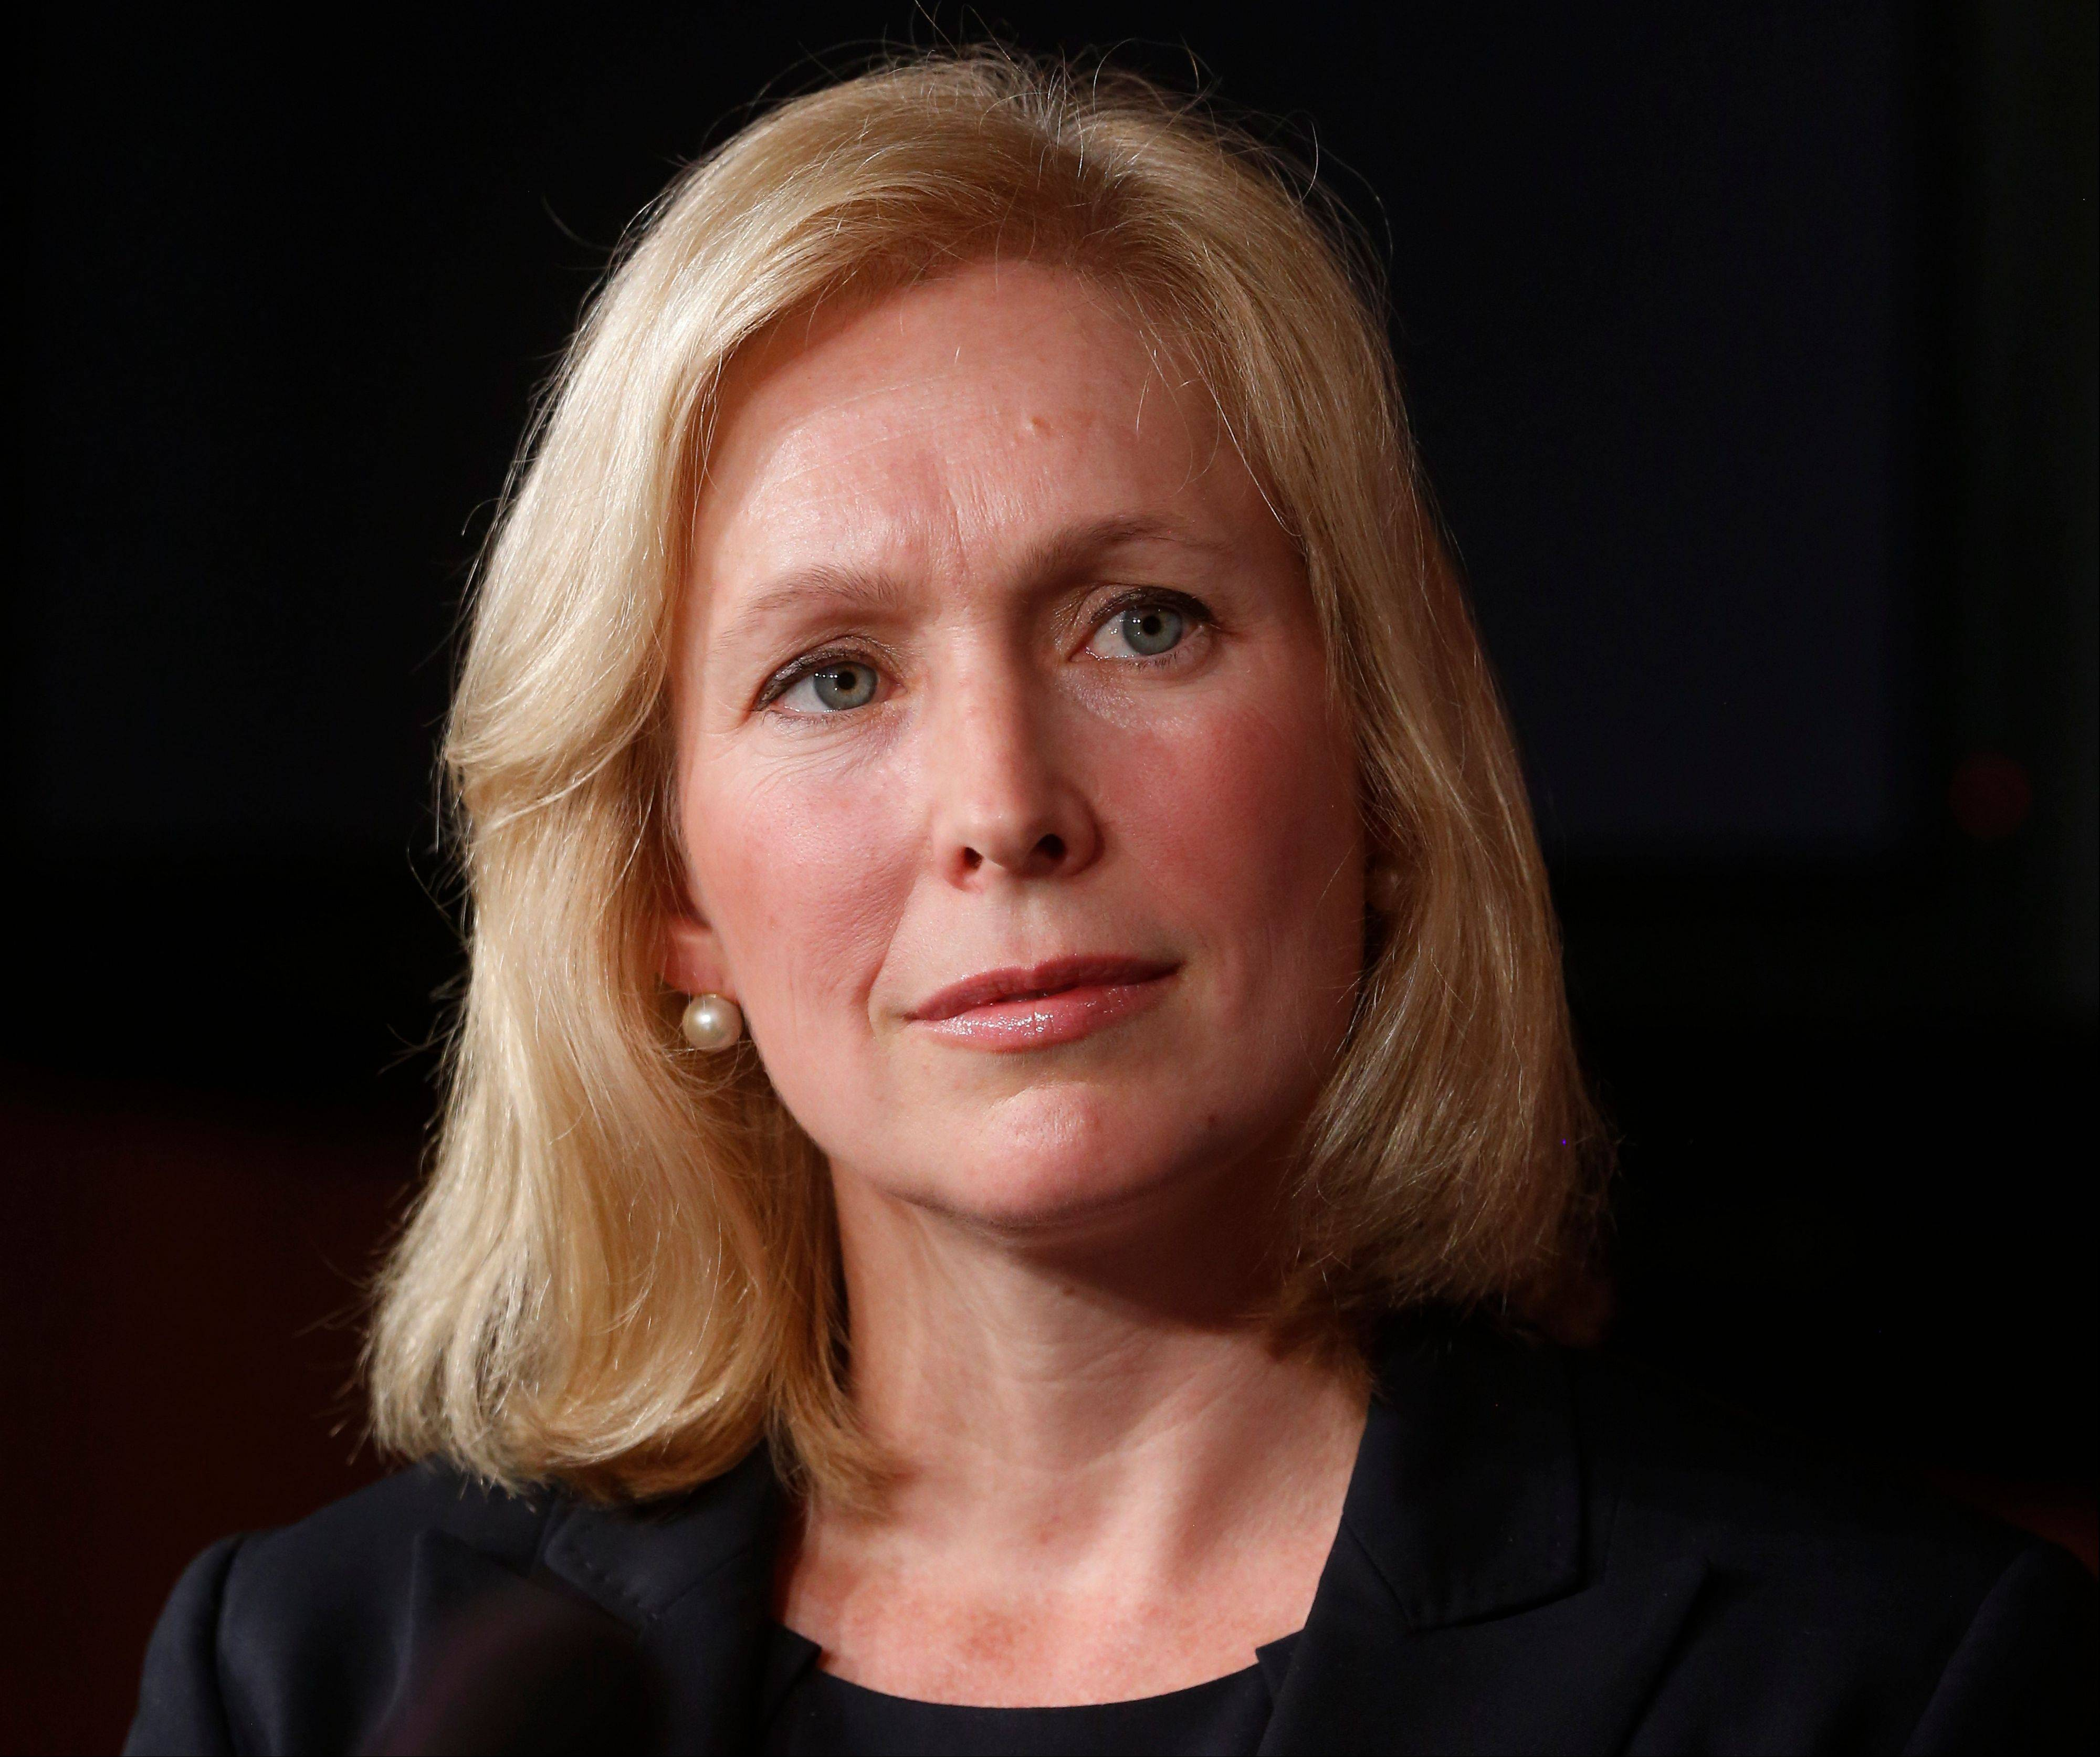 Sen. Kirsten Gillibrand, a New York Democrat, has proposed giving victims of rape and sexual assault in the military an independent route outside the chain of command for prosecuting attackers.